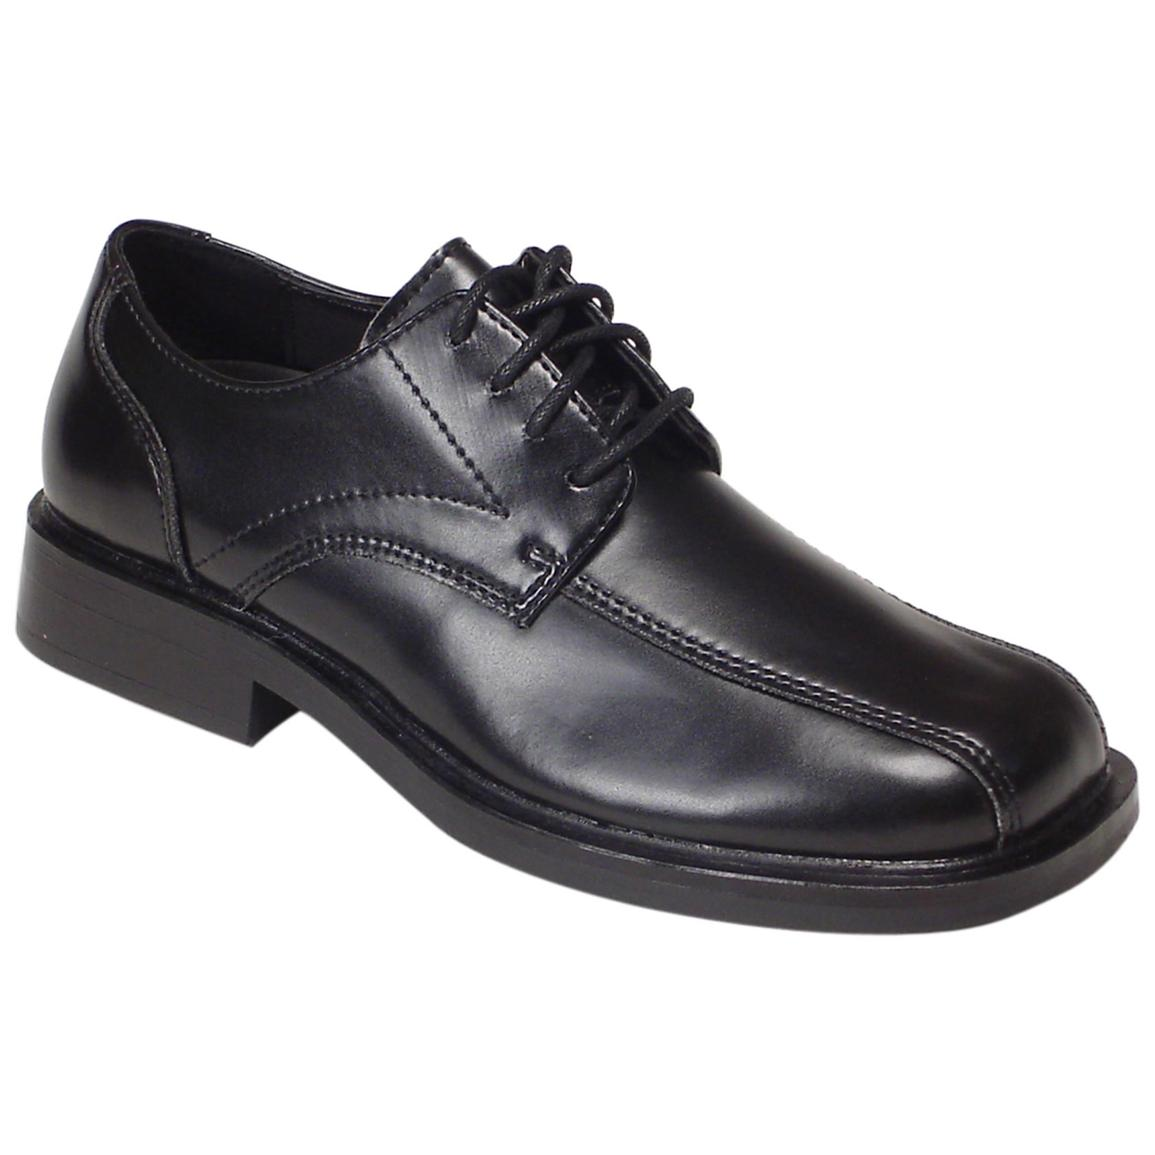 casual black dress shoes photo - 1